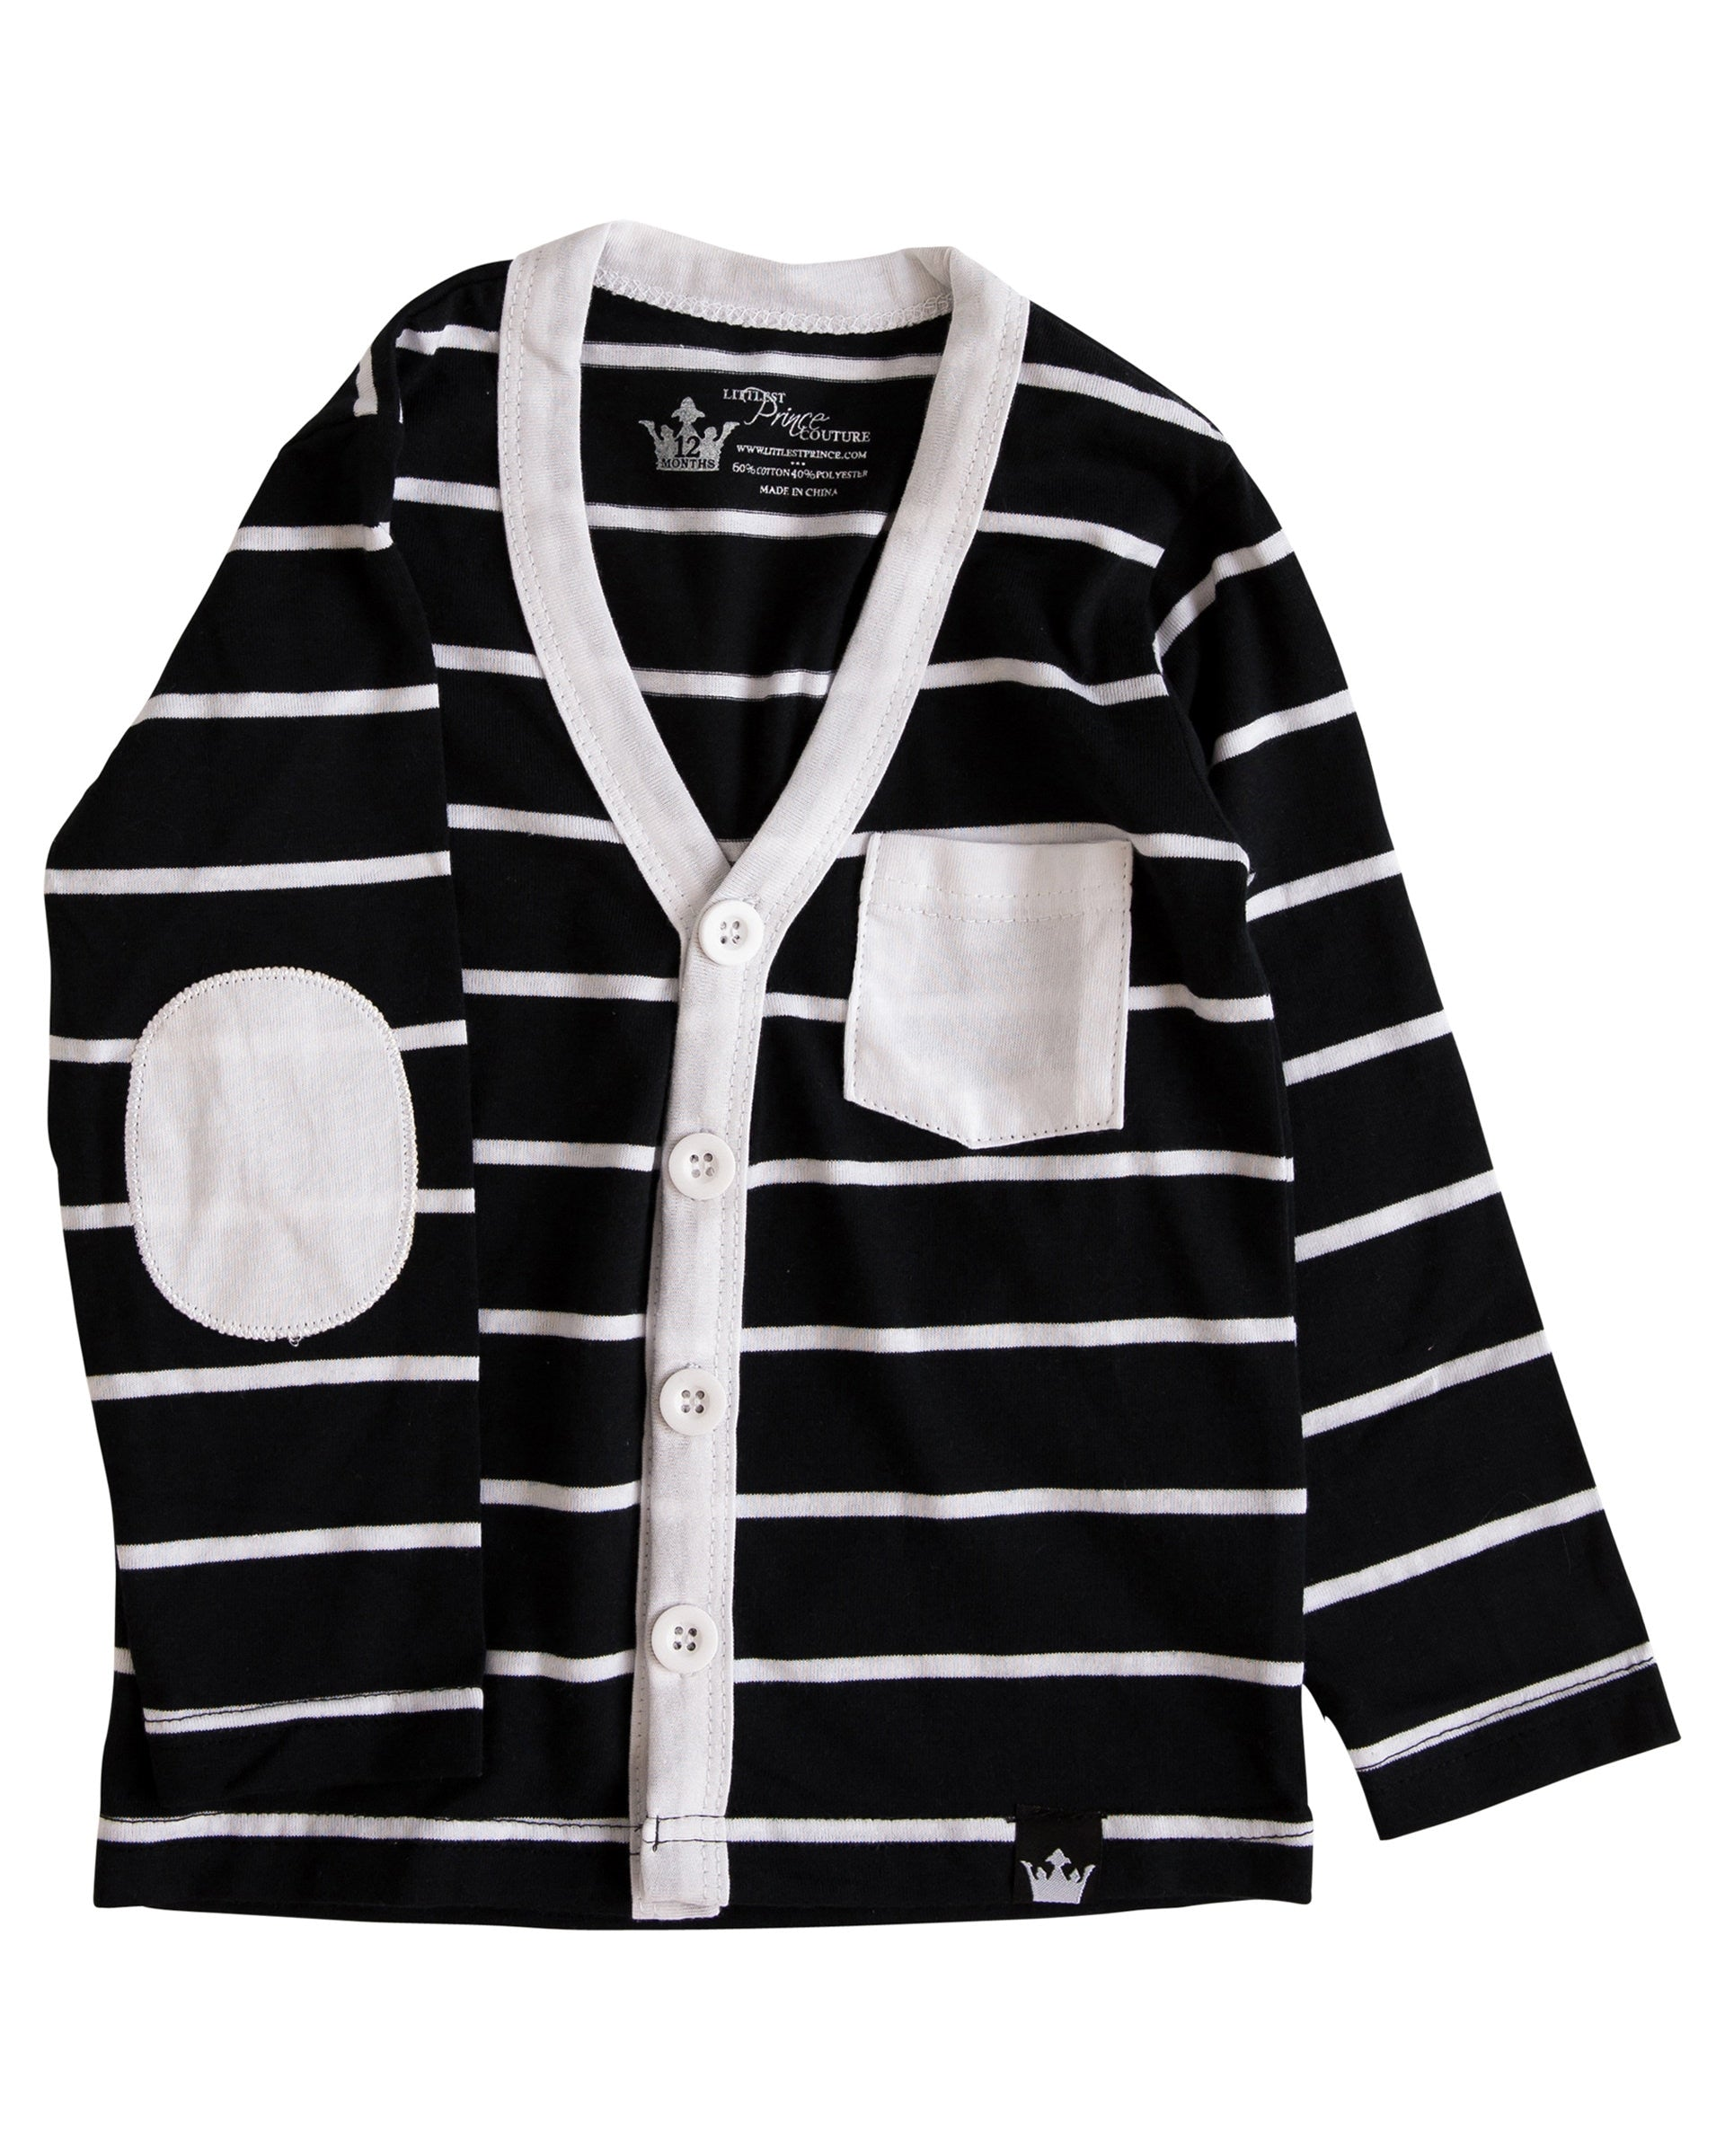 lscars-tbs-thick-black-stripe-cardigan-shirt.jpg